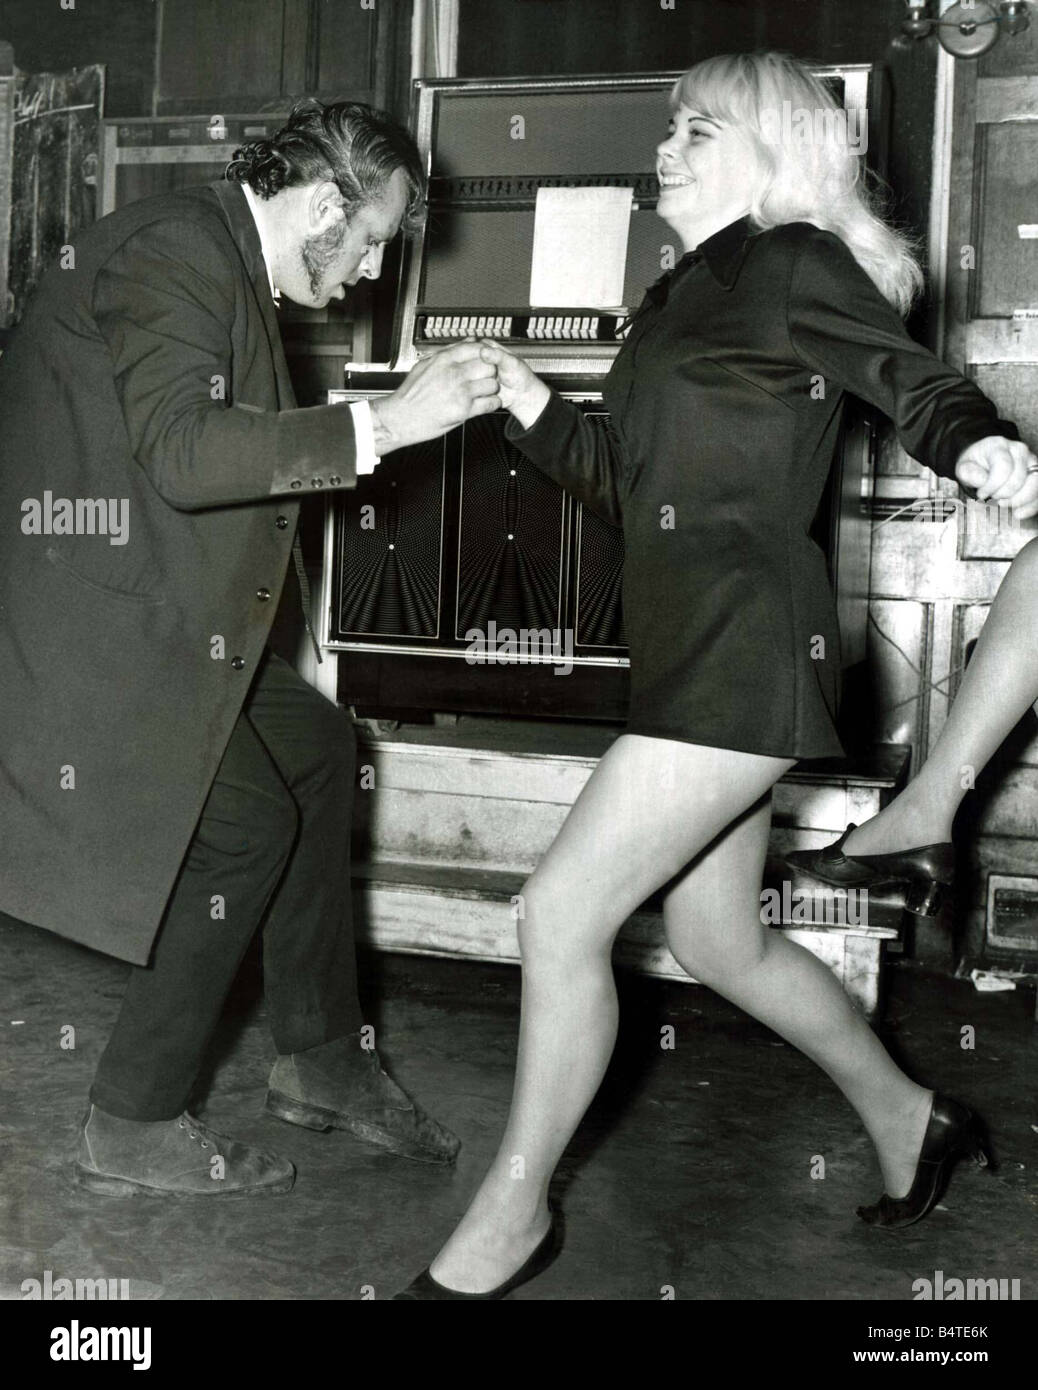 David and Caroline Page from Ilford rock away at the Black Raven pub in Bishopsgate London Teddyboys emerge on a - Stock Image